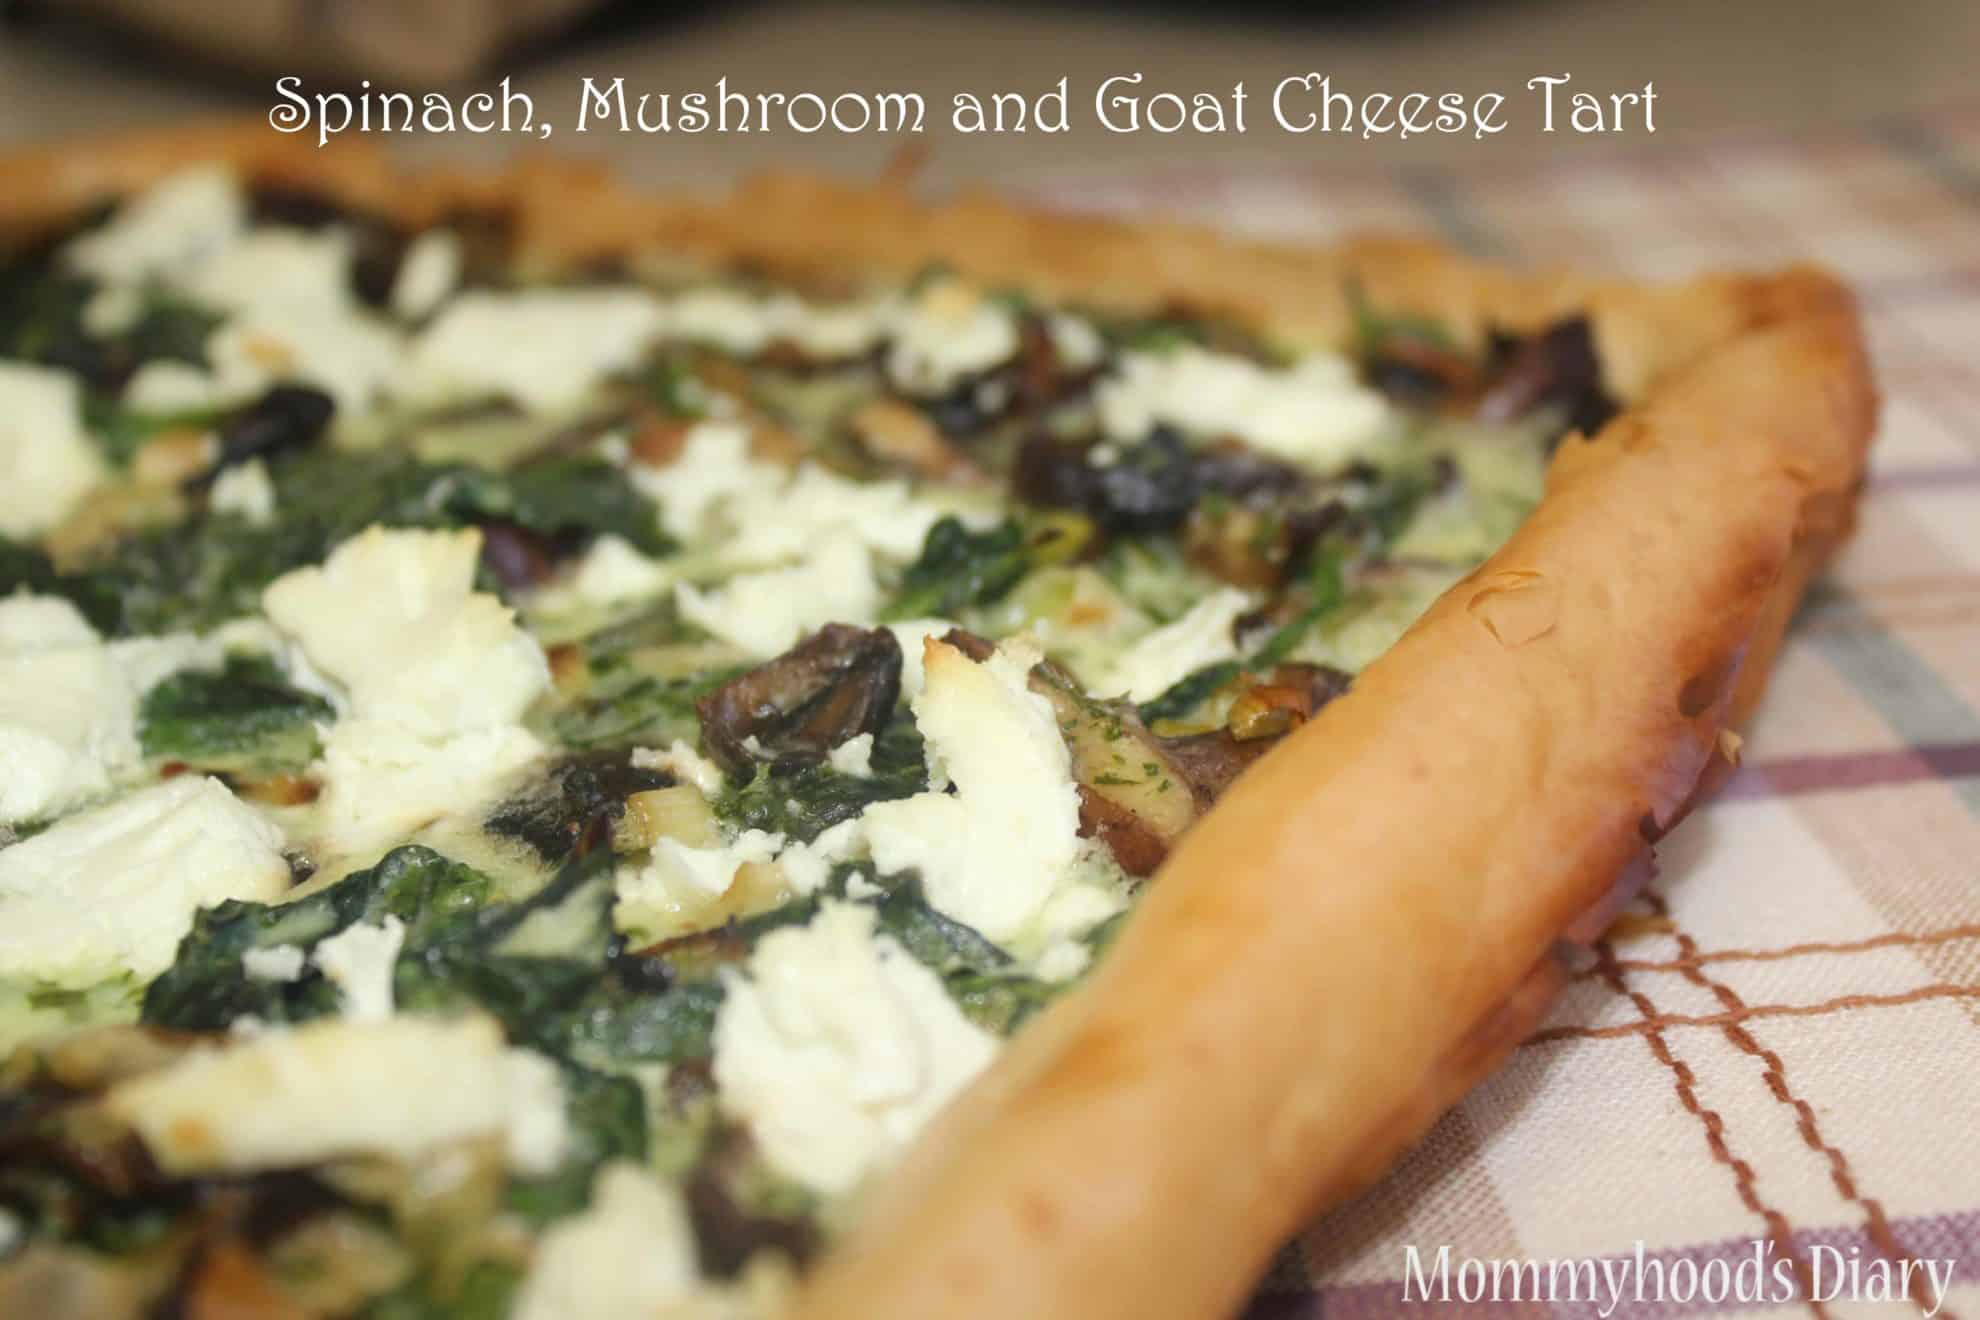 Spinach, Mushroom and Goat Cheese Tart